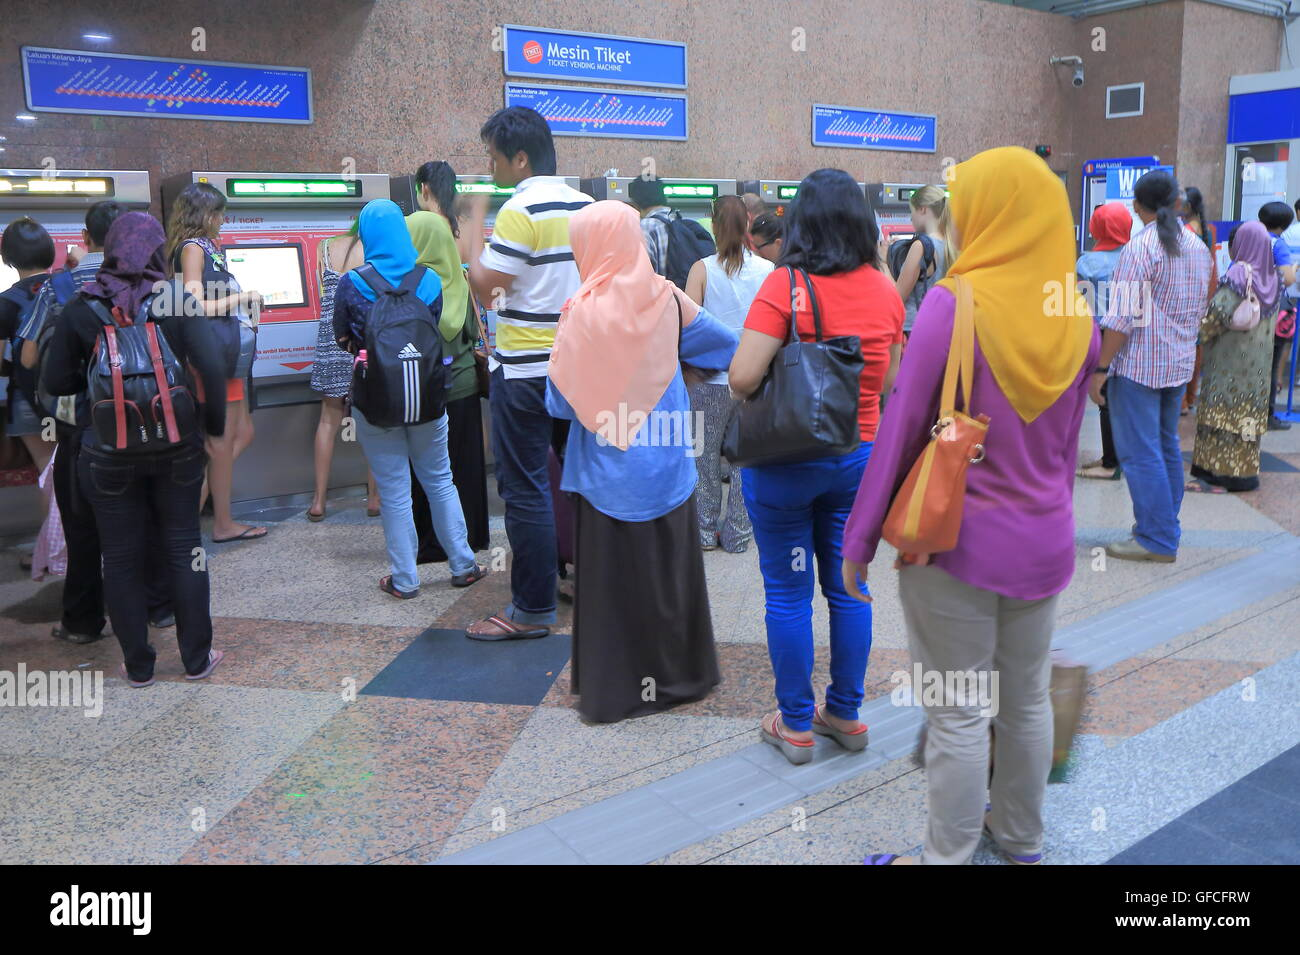 People queue for ticket machines at KL Sentral Station in Kuala Lumpur Malaysia. - Stock Image